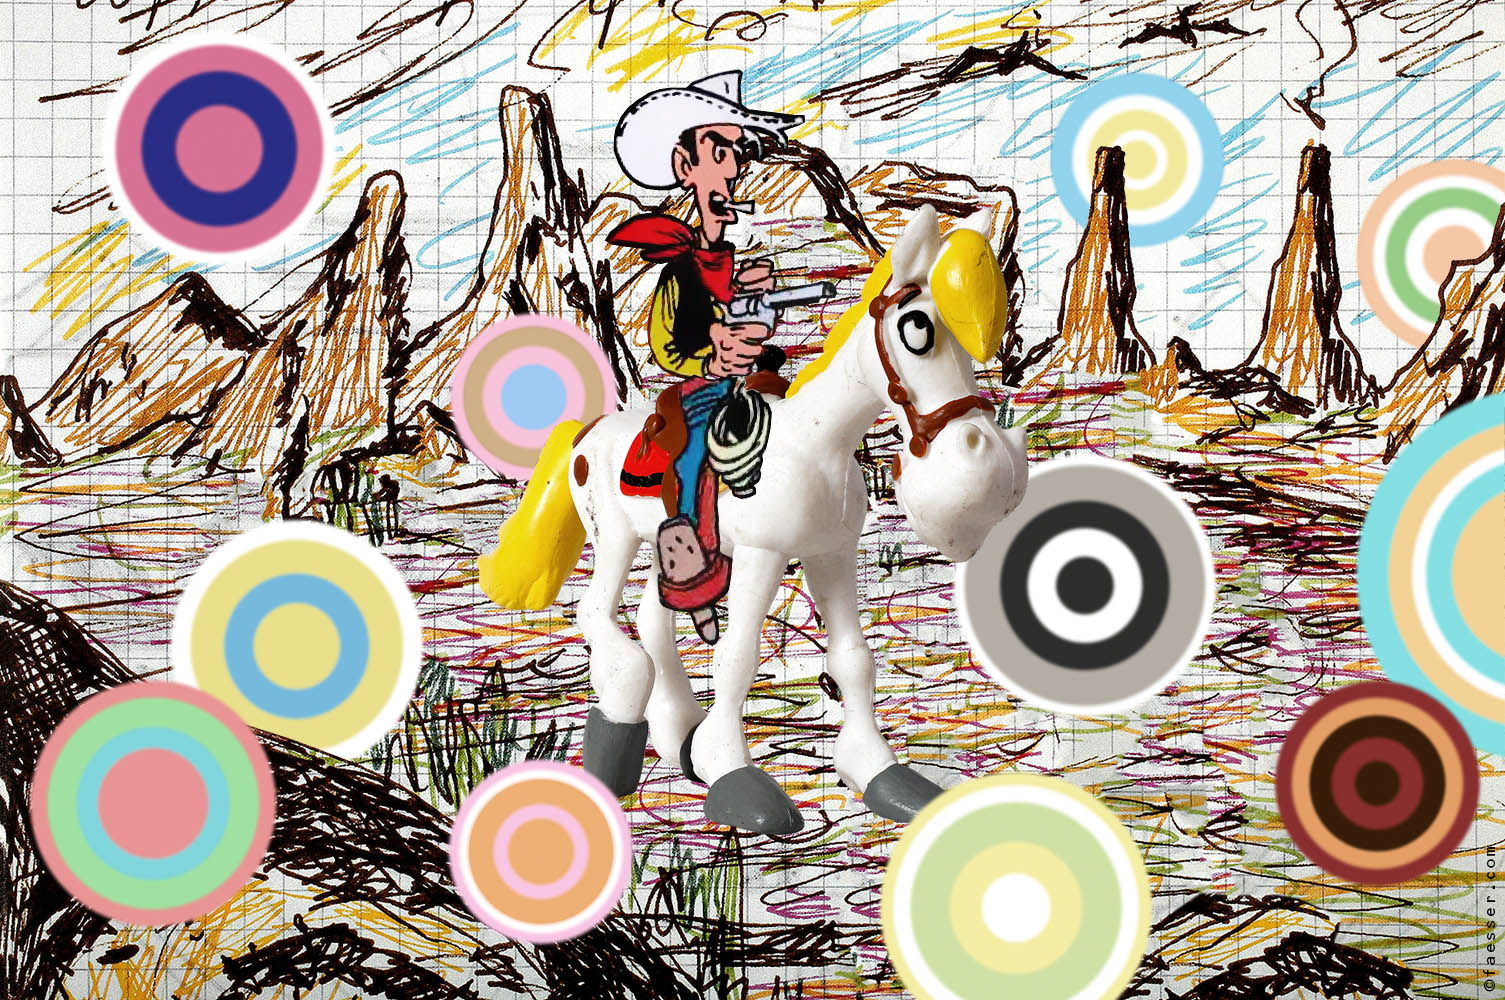 Lucky Luke on his horse, shooting colored bubbles; artist Roland Faesser, sculptor and painter 2018